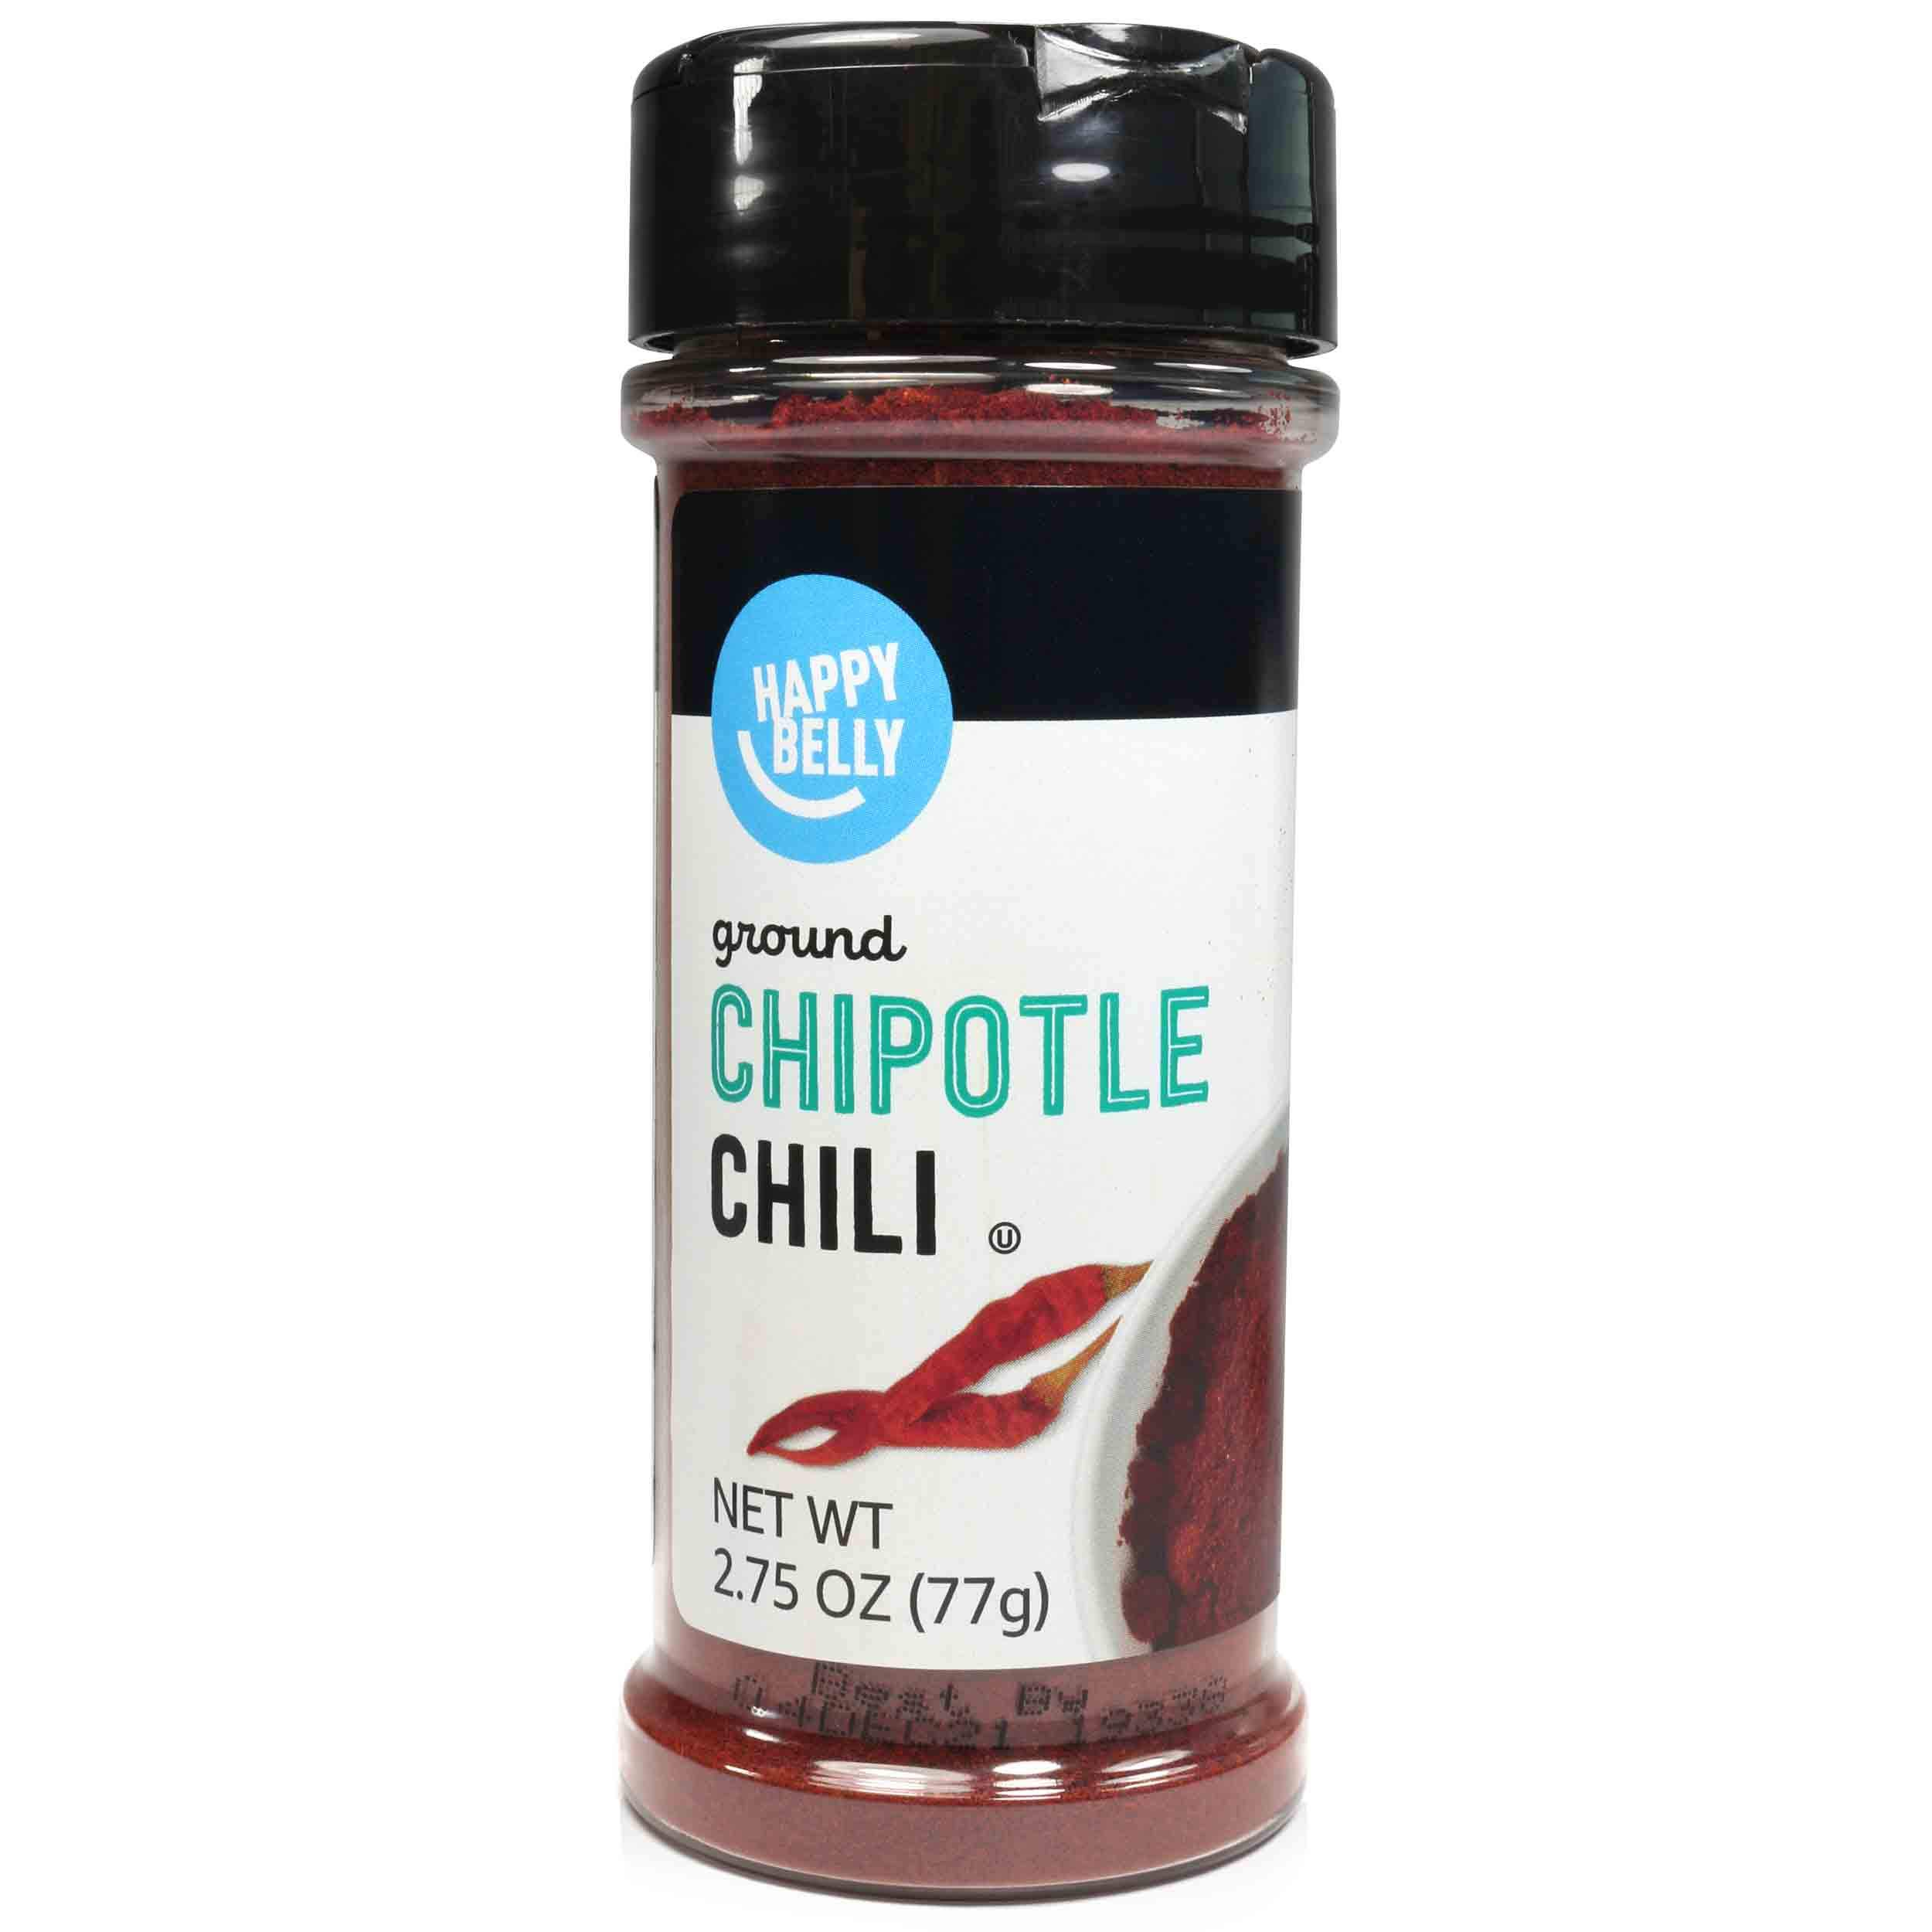 Amazon Brand - Happy Belly Chipotle Chili, Crushed, 2.75 oz